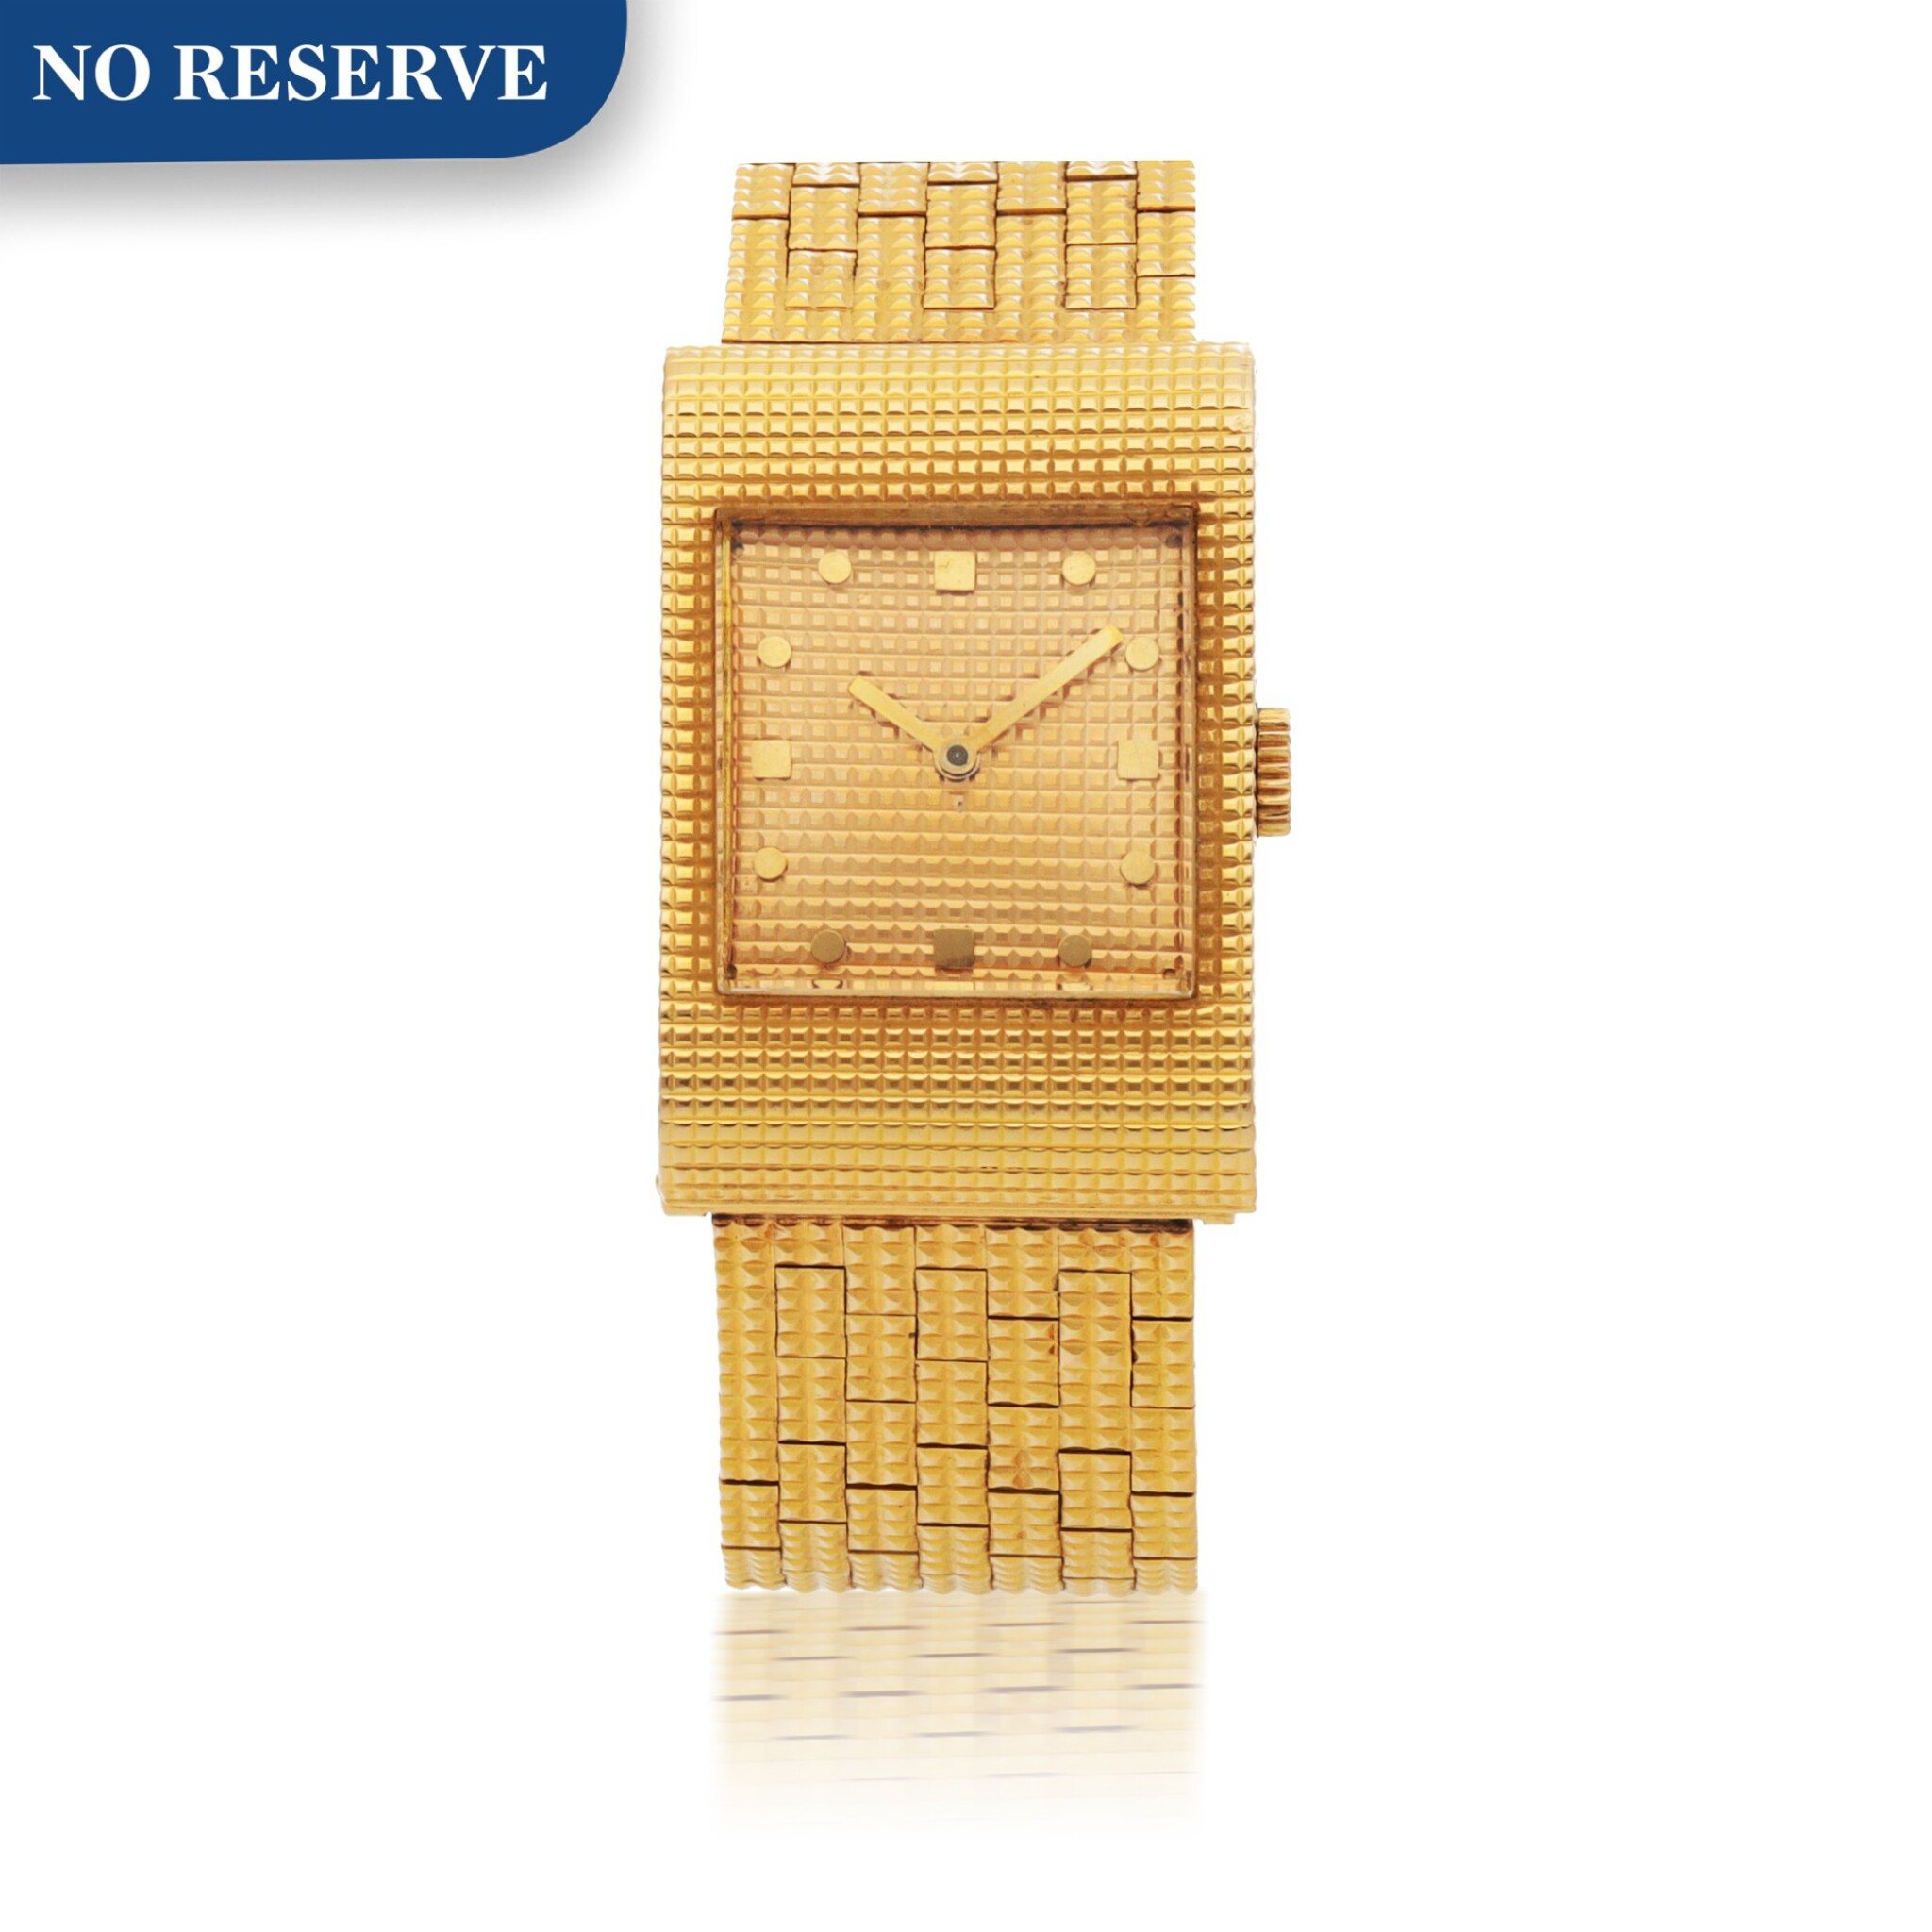 BOUCHERON | REF BT908-247 YELLOW GOLD WRISTWATCH WITH BRACELET CIRCA 1970